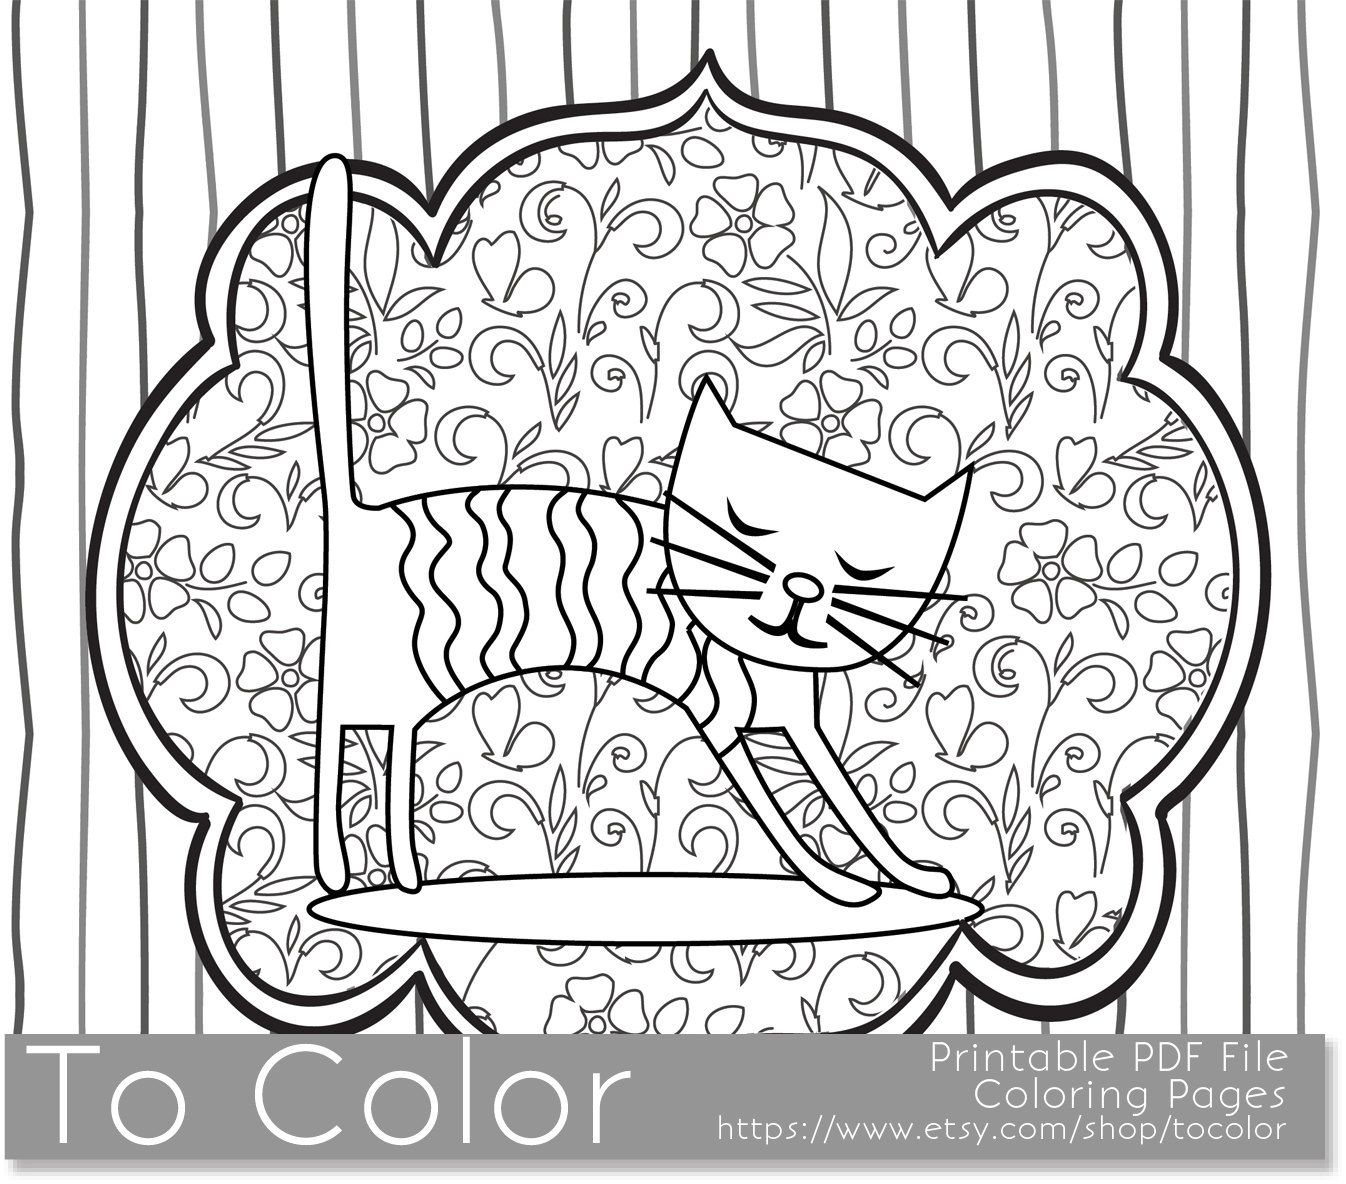 Whimsical designs coloring book - Color Sheets